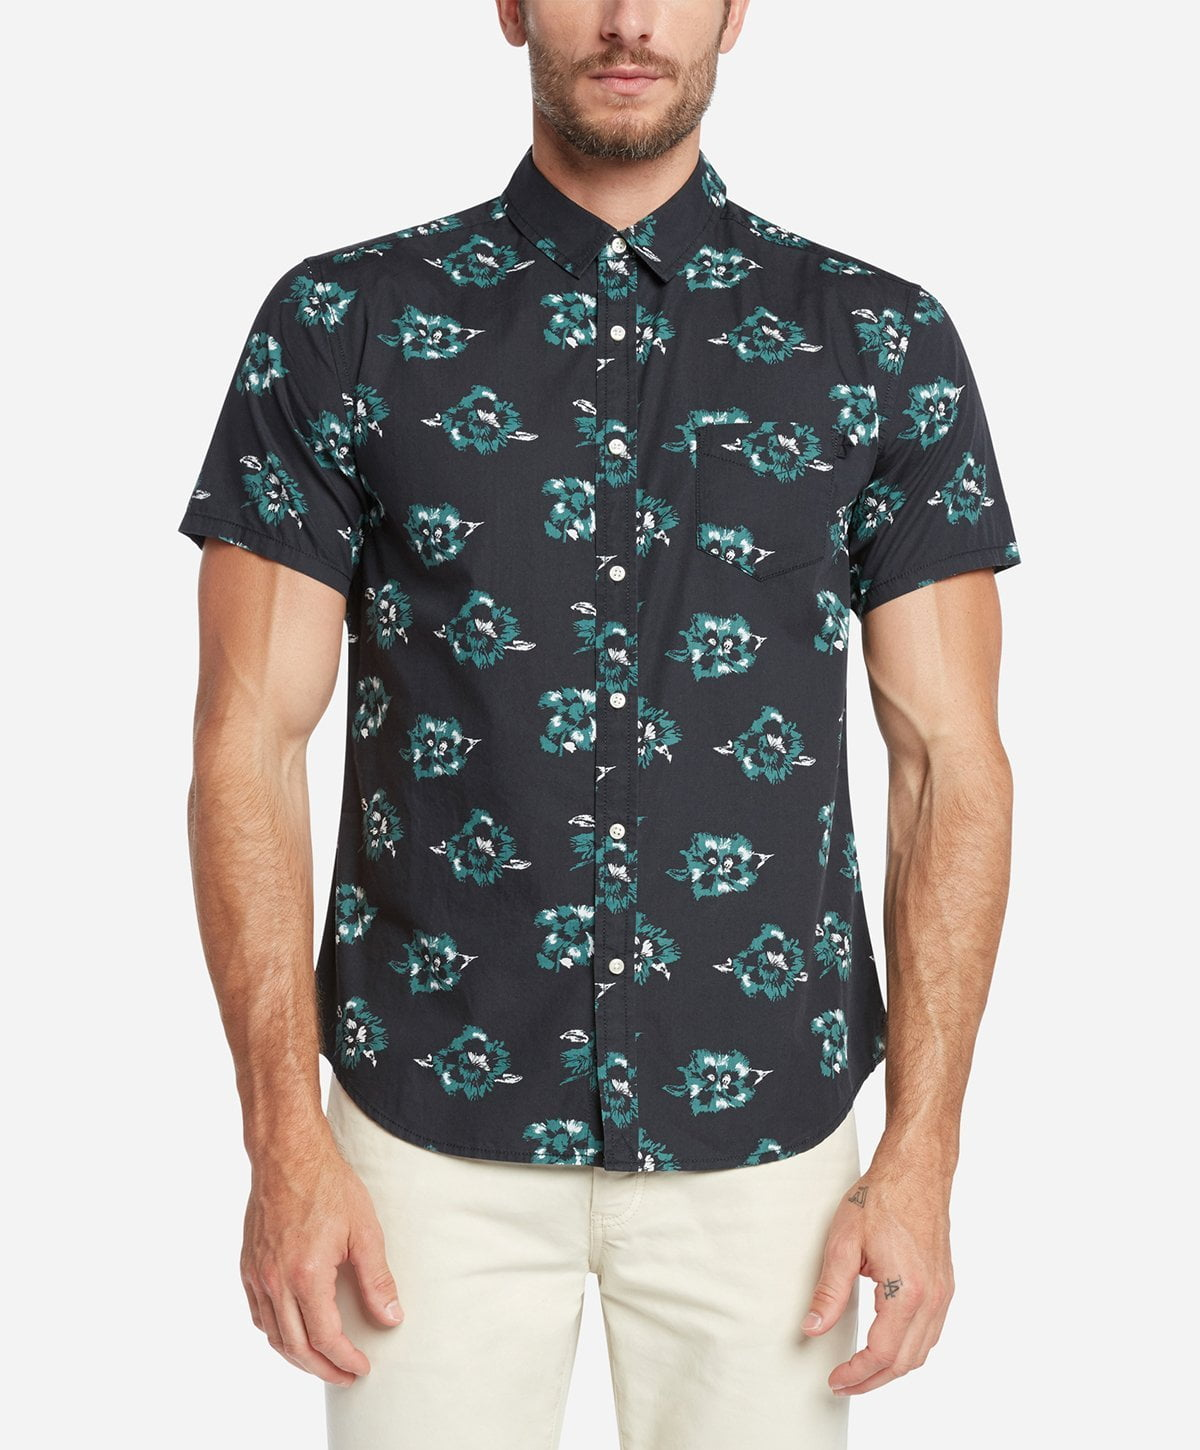 Rosarito Short Sleeve Shirt - Black